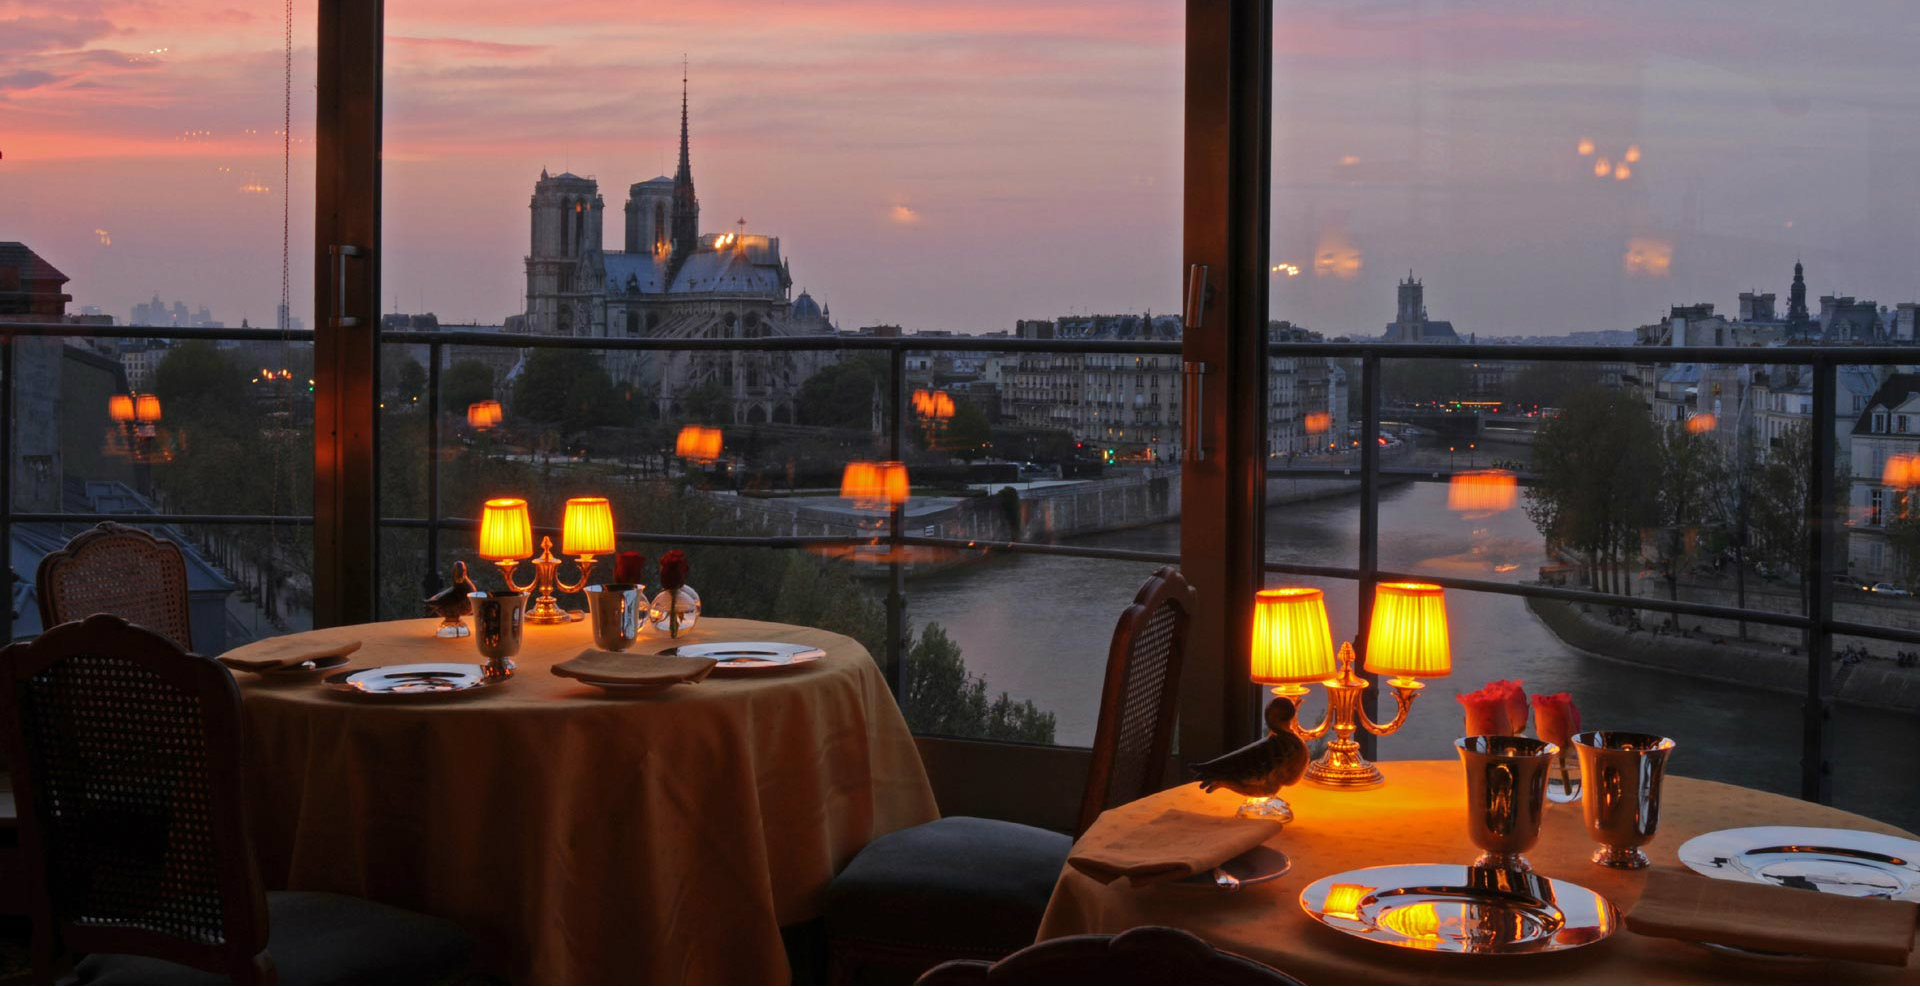 Find the best restaurants in Paris Best Hotels in France The Best Hotels in France You Need To Stay In Find the best restaurants in Paris cover Best Hotels in France The Best Hotels in France You Need To Stay In Find the best restaurants in Paris cover